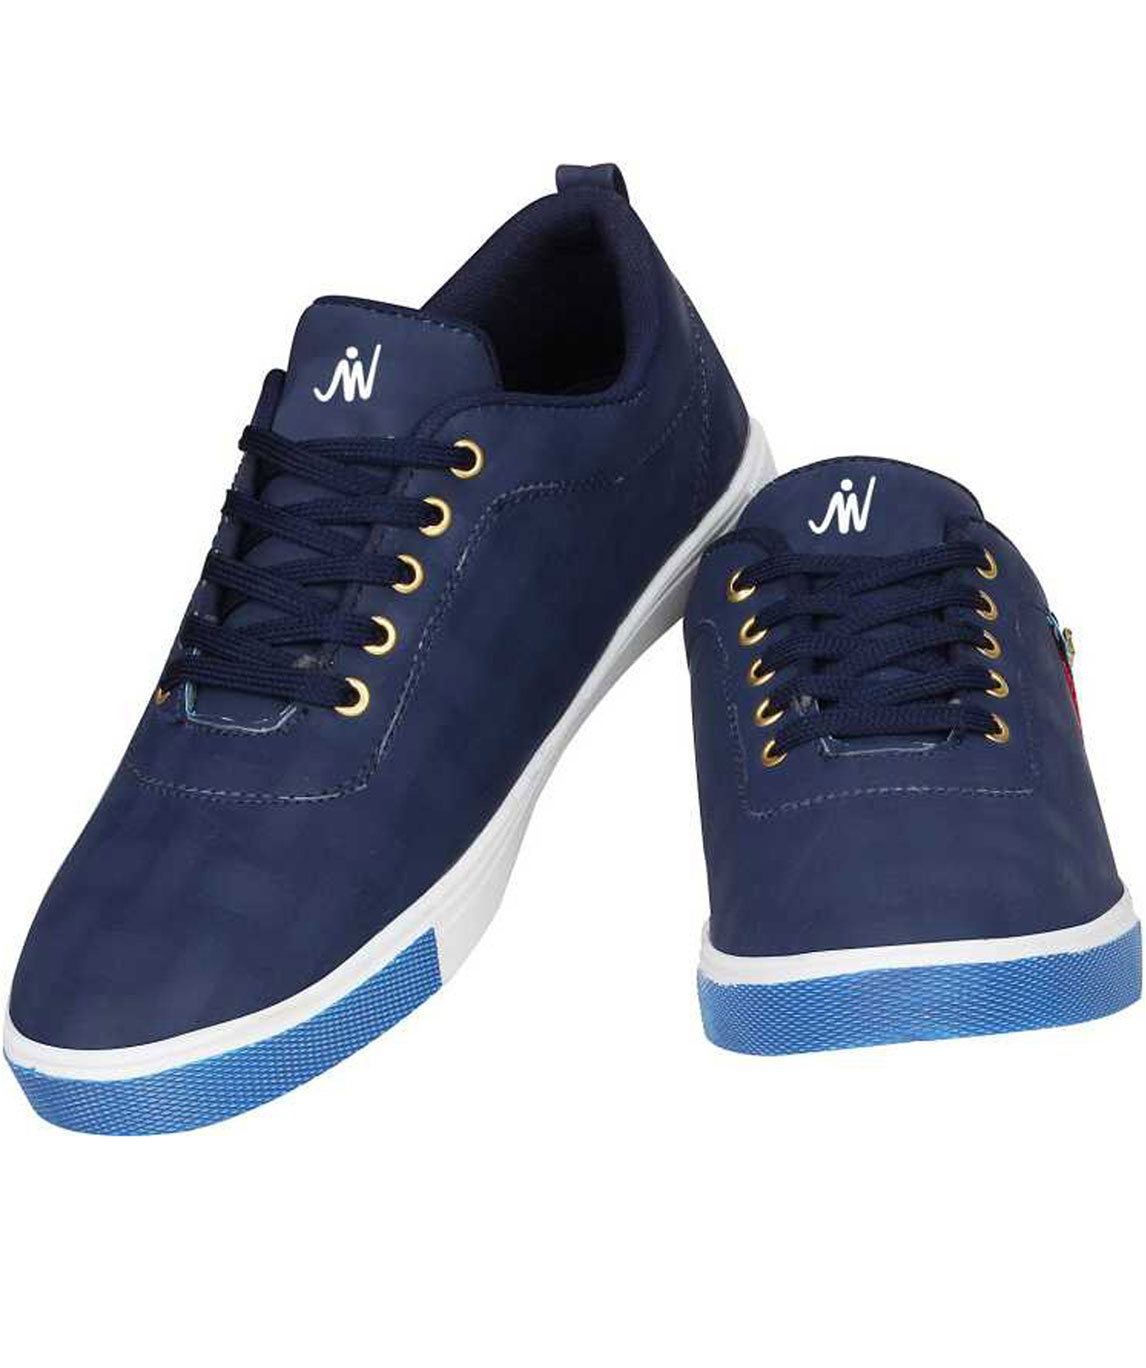 CHECK SNEAKERS CASUALS FOR MEN (NAVY, WHITE)